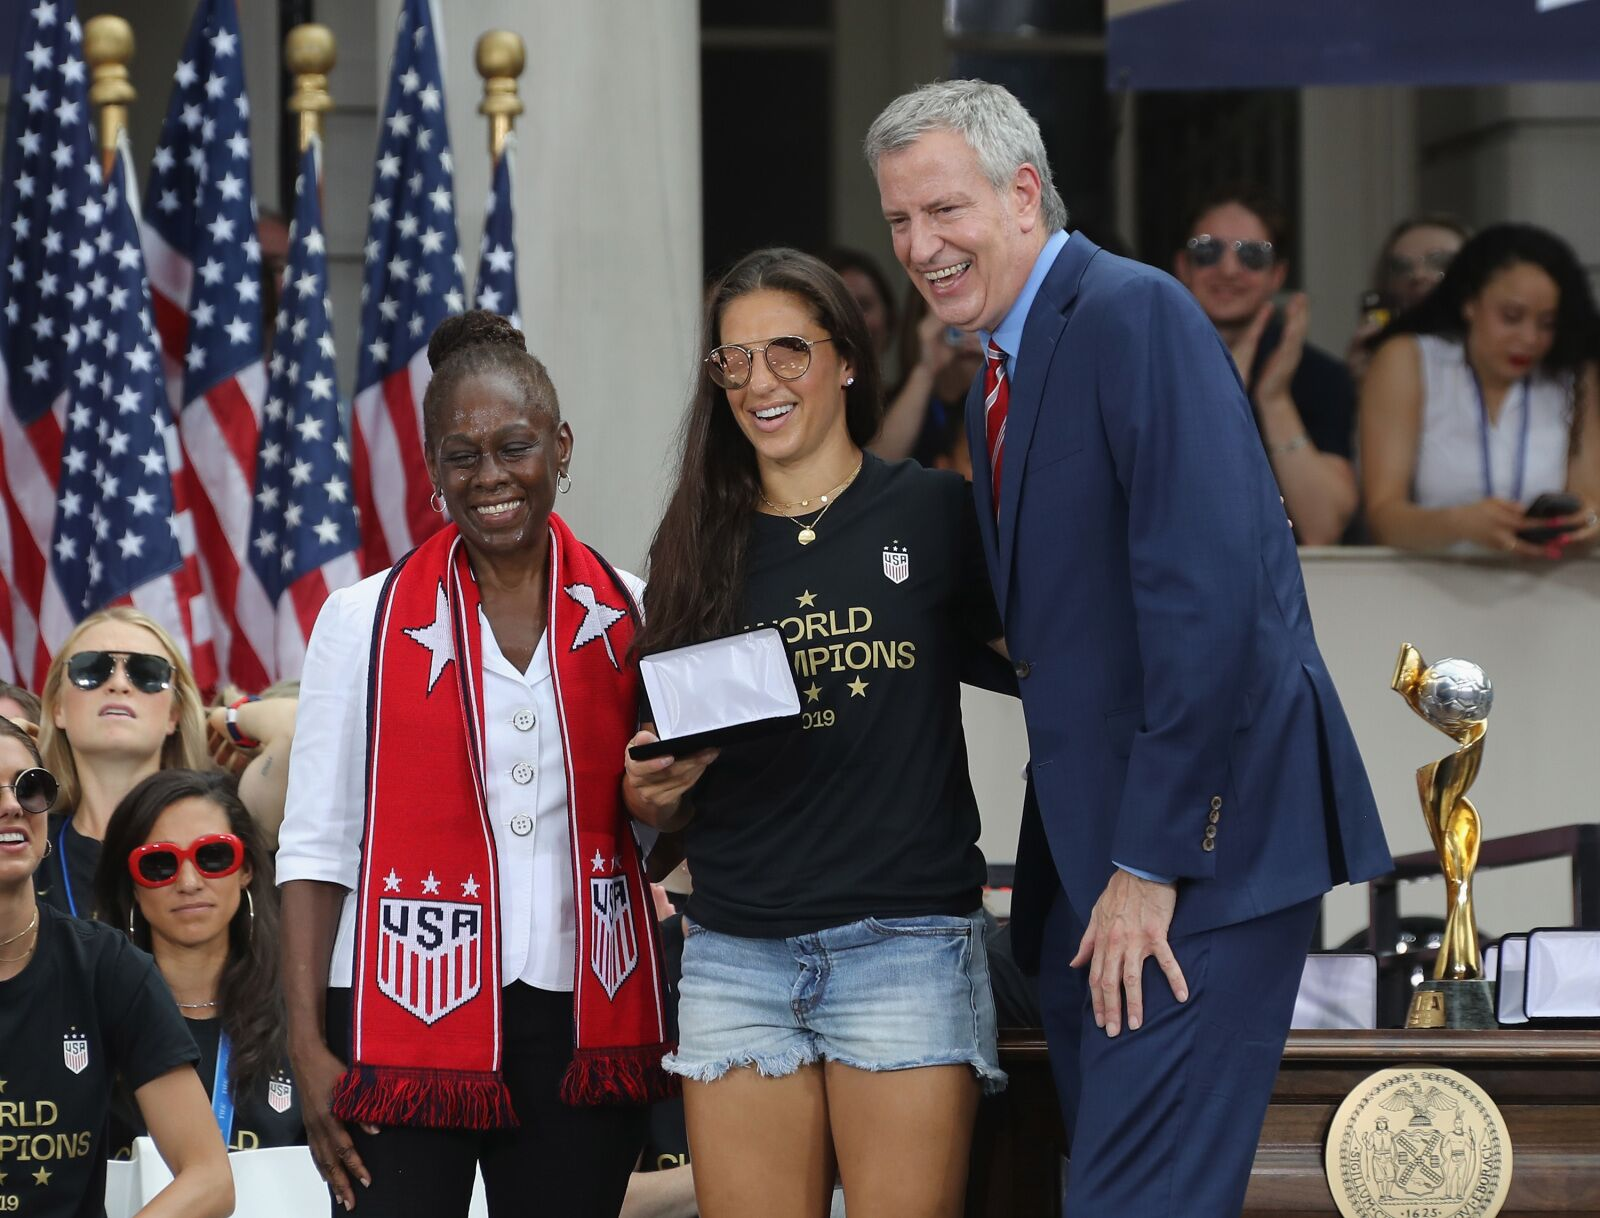 Philadelphia Eagles get a huge shout out from Carli Lloyd